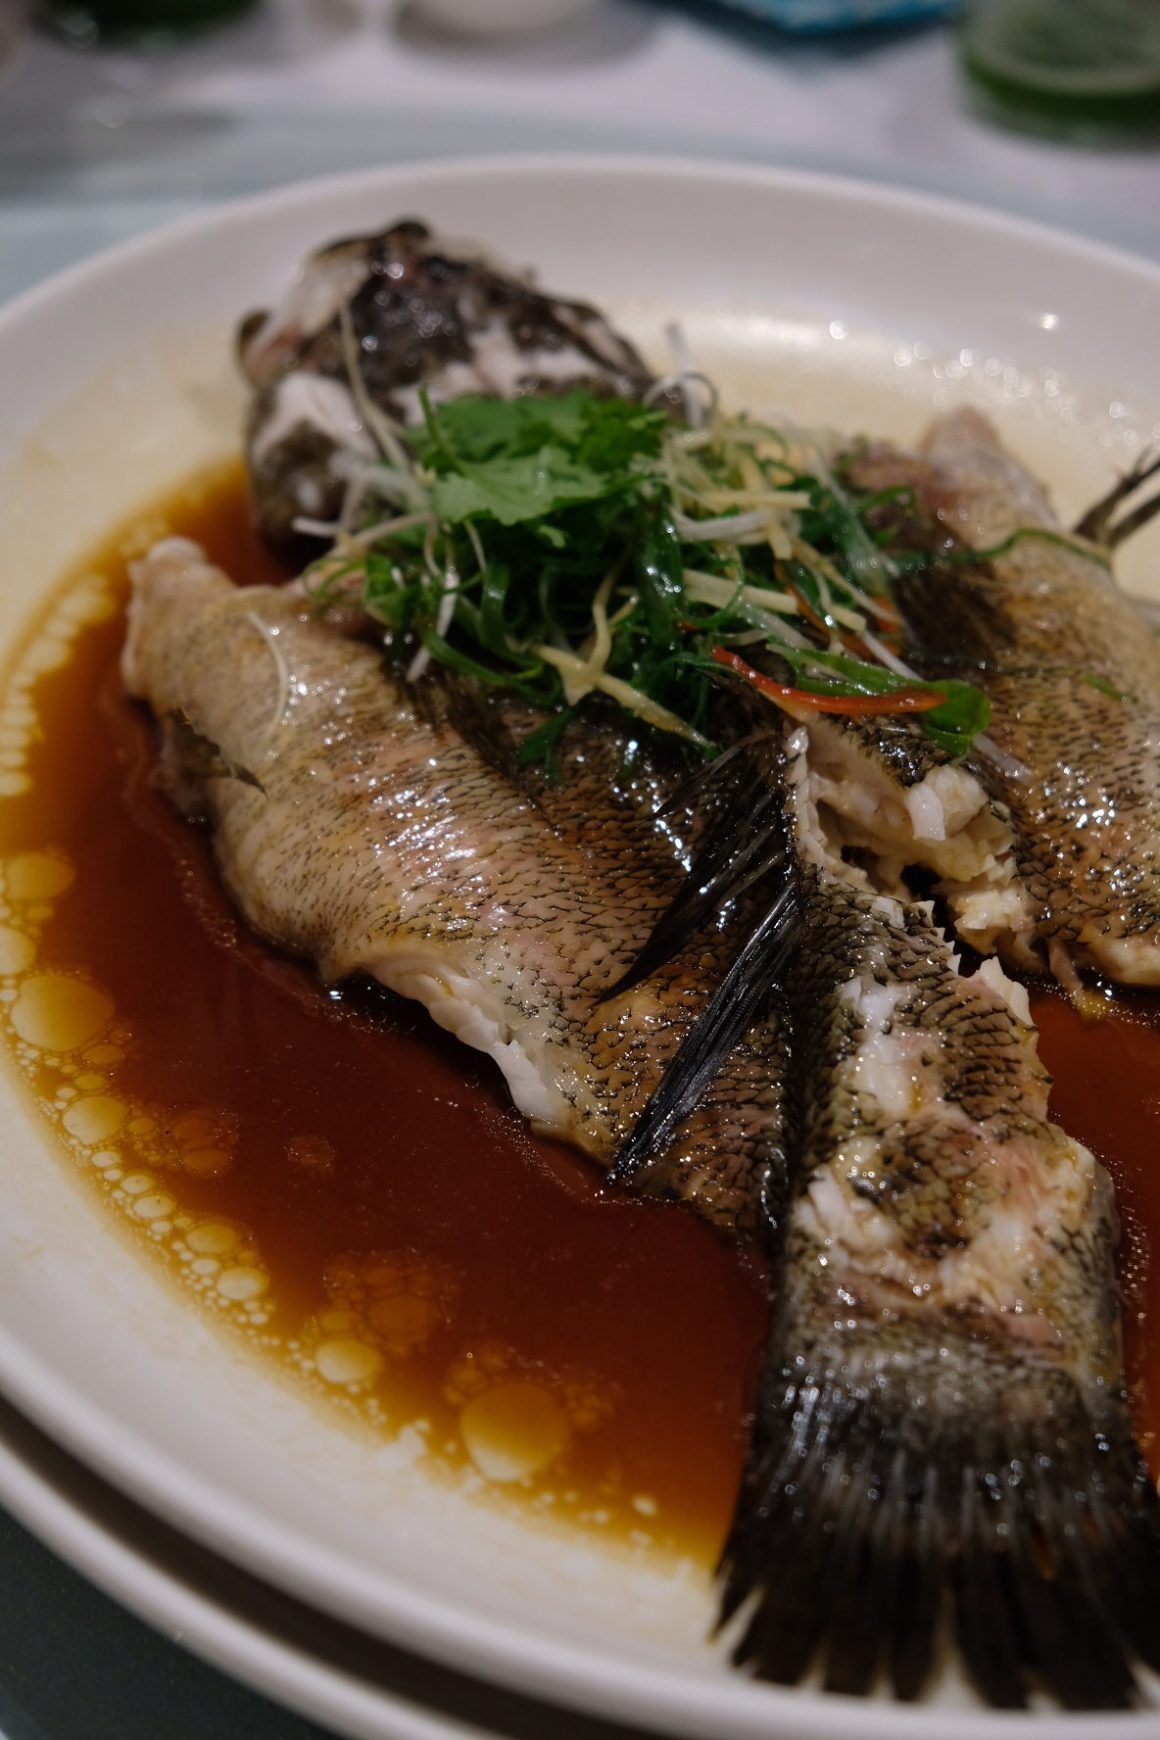 Best restaurants For Your Chinese New Year 2019 Reunion Dinner In Singapore - Putien, Steamed Soon Hock